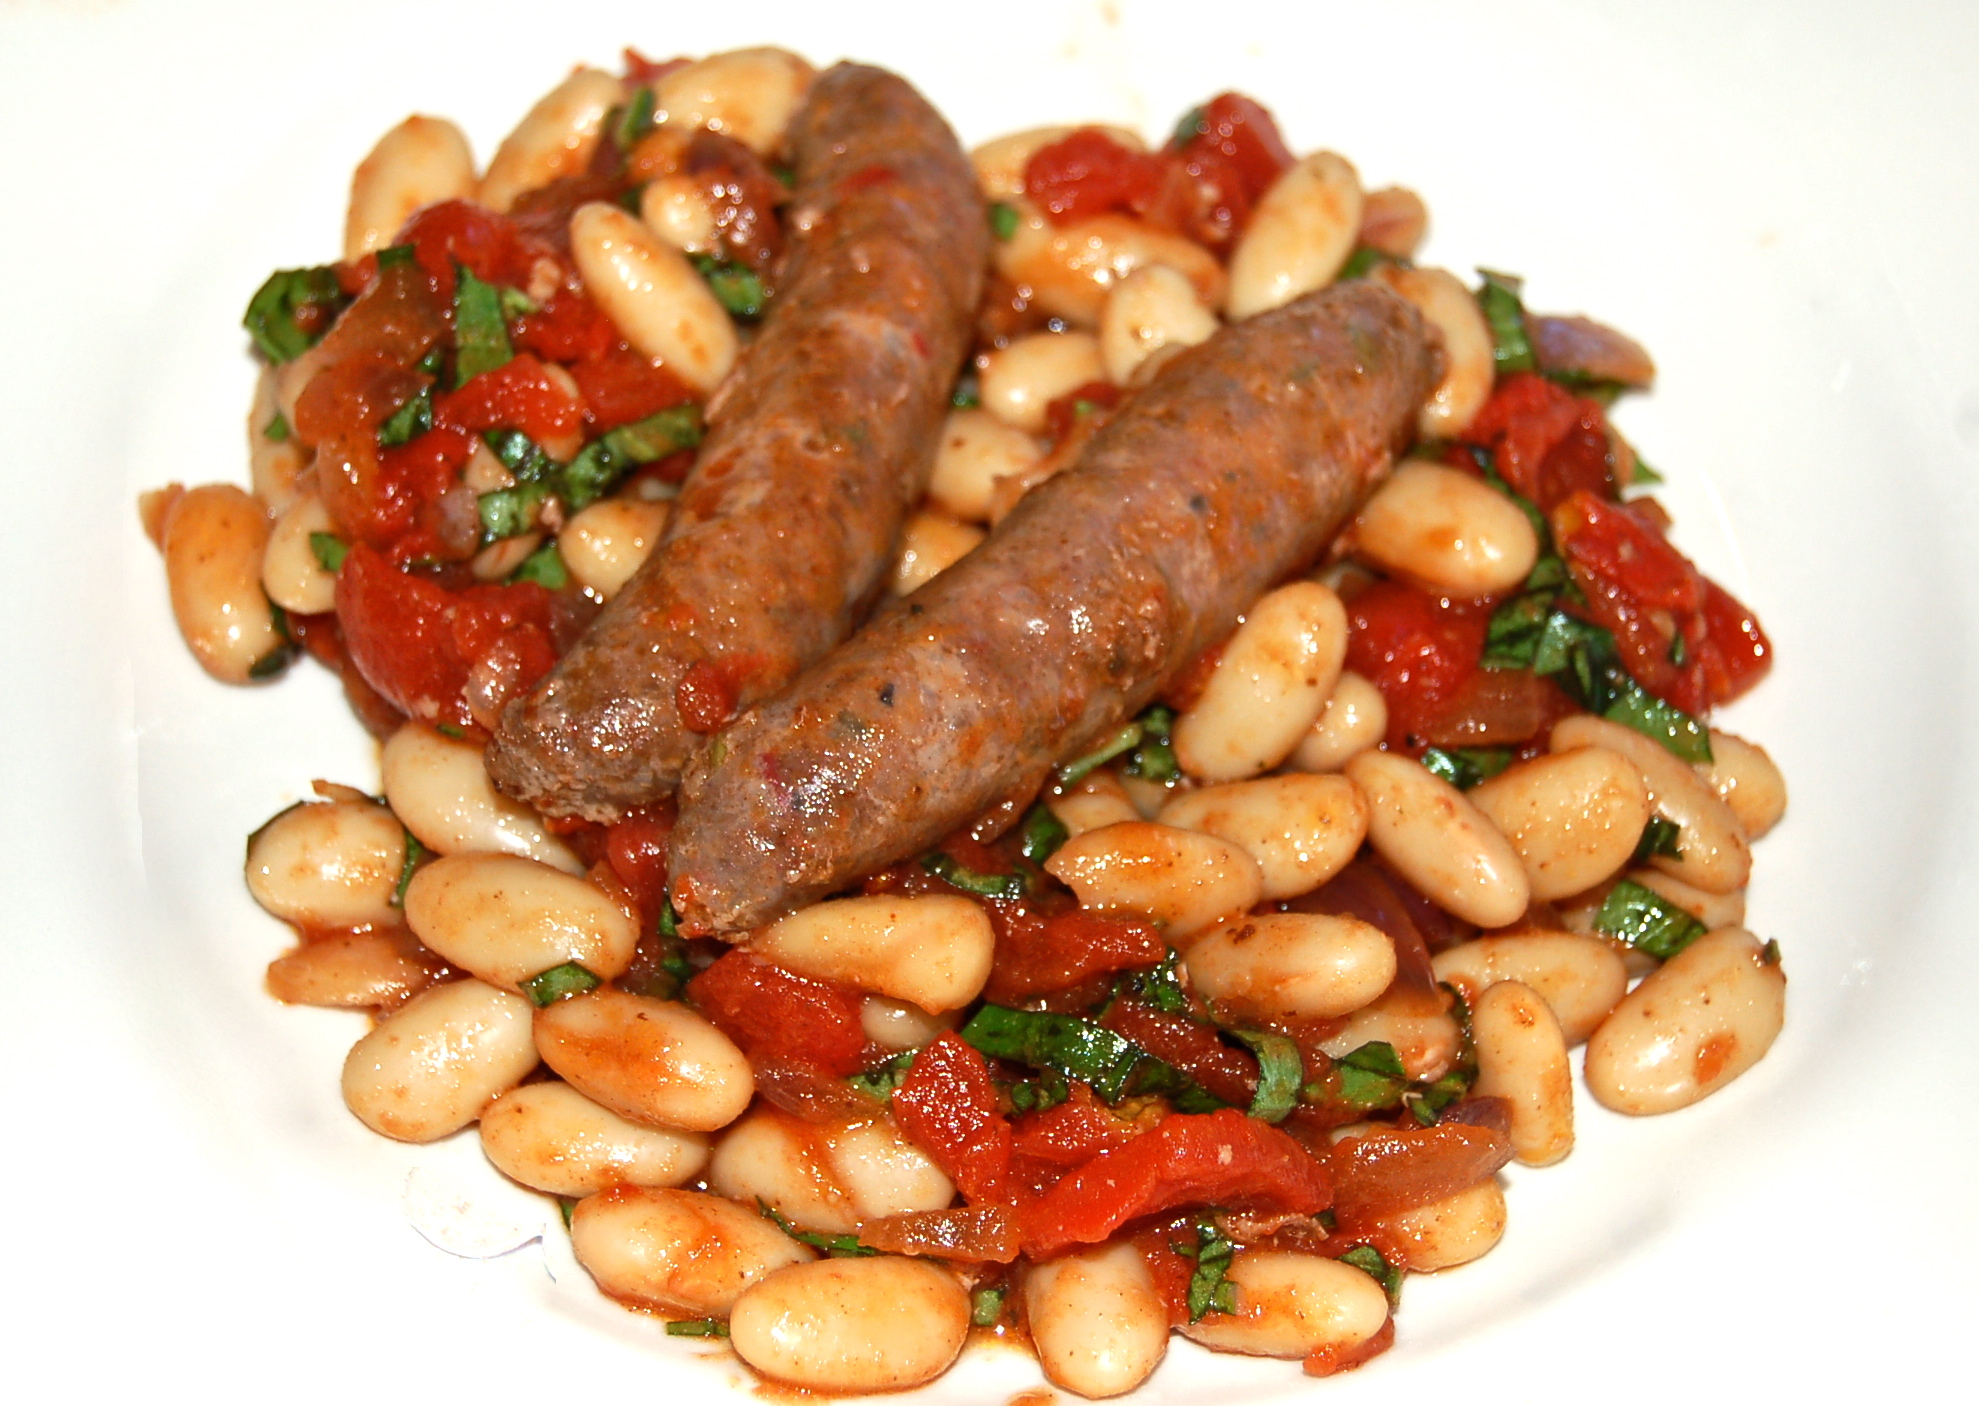 August 12, 2012 Merguez Lamb Sausage With Cannellini Bean Stew